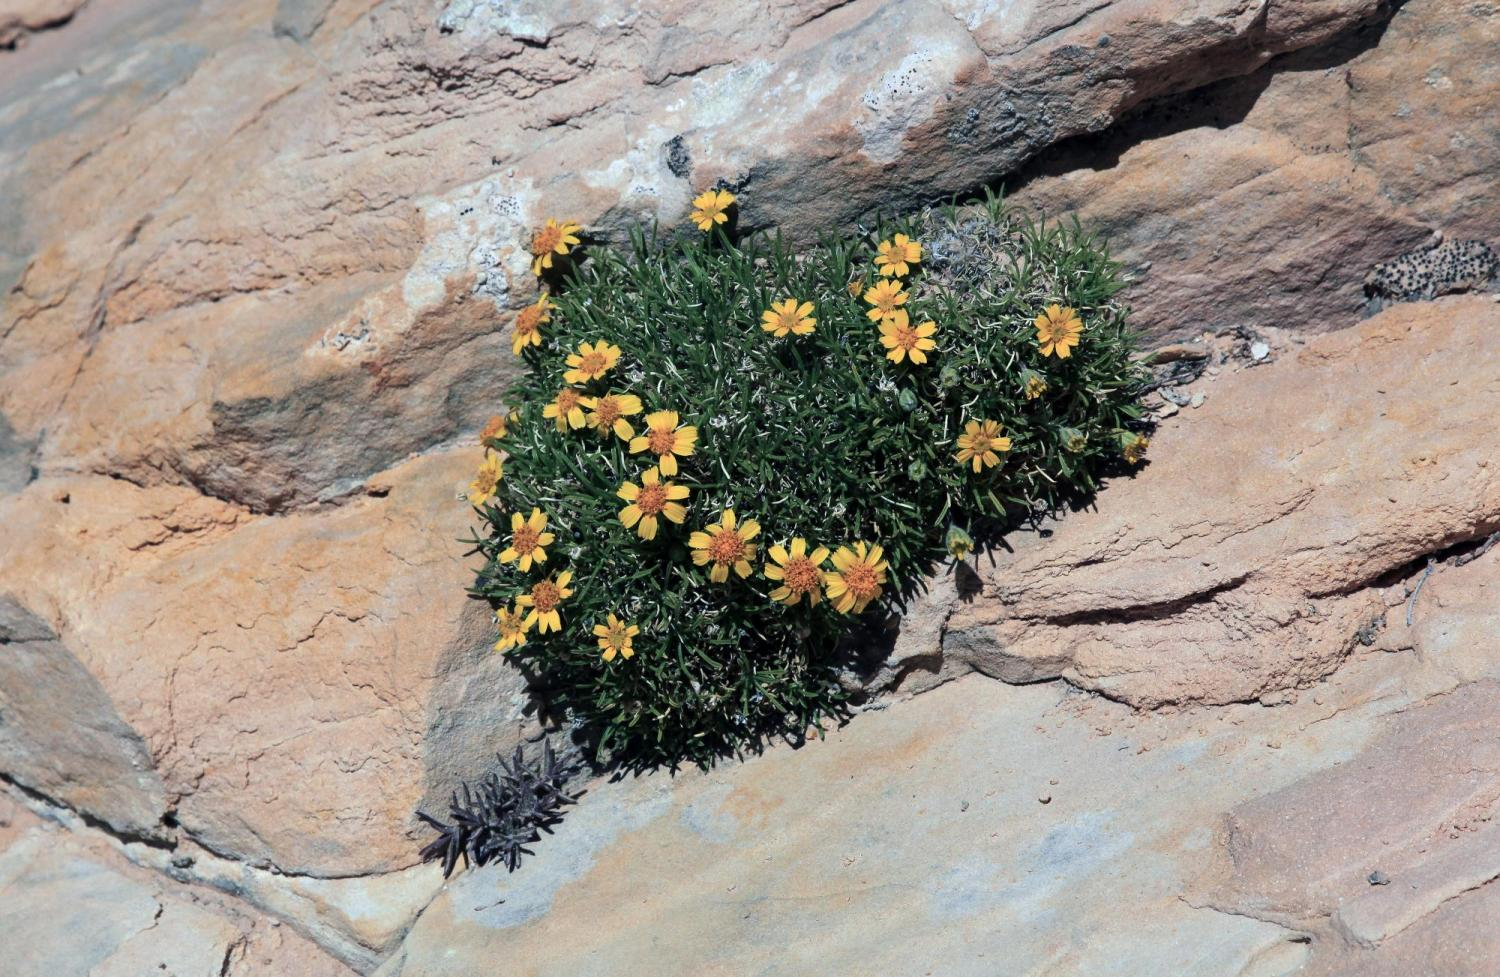 A stemless four-nerve daisy growing from a sandstone crevice